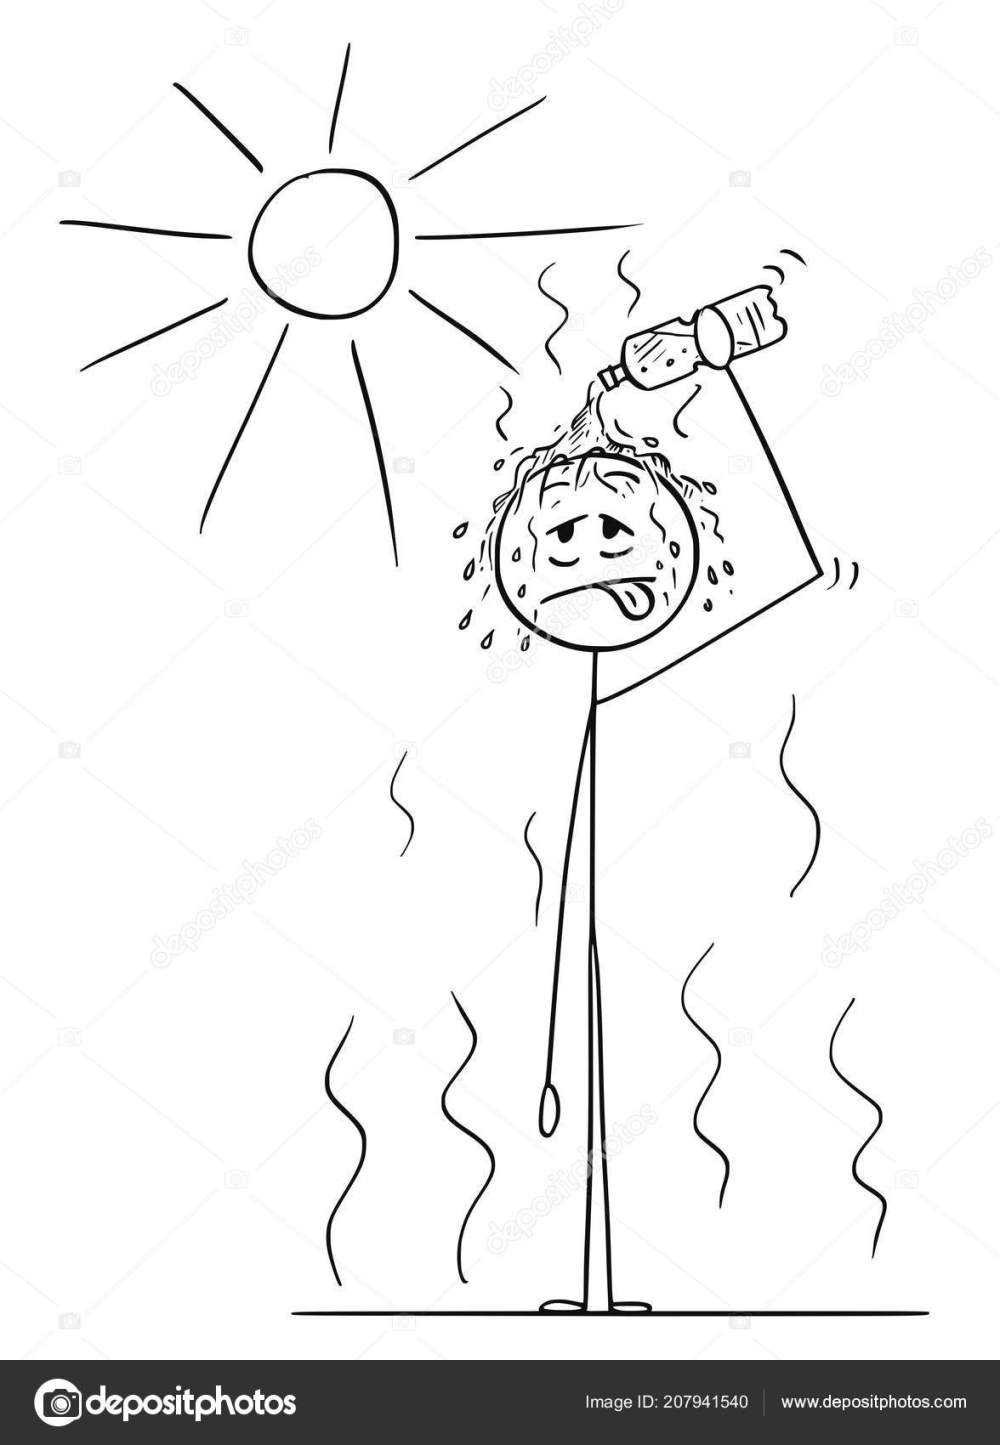 medium resolution of cartoon of man in hot summer pouring water from bottle on his head stock illustration